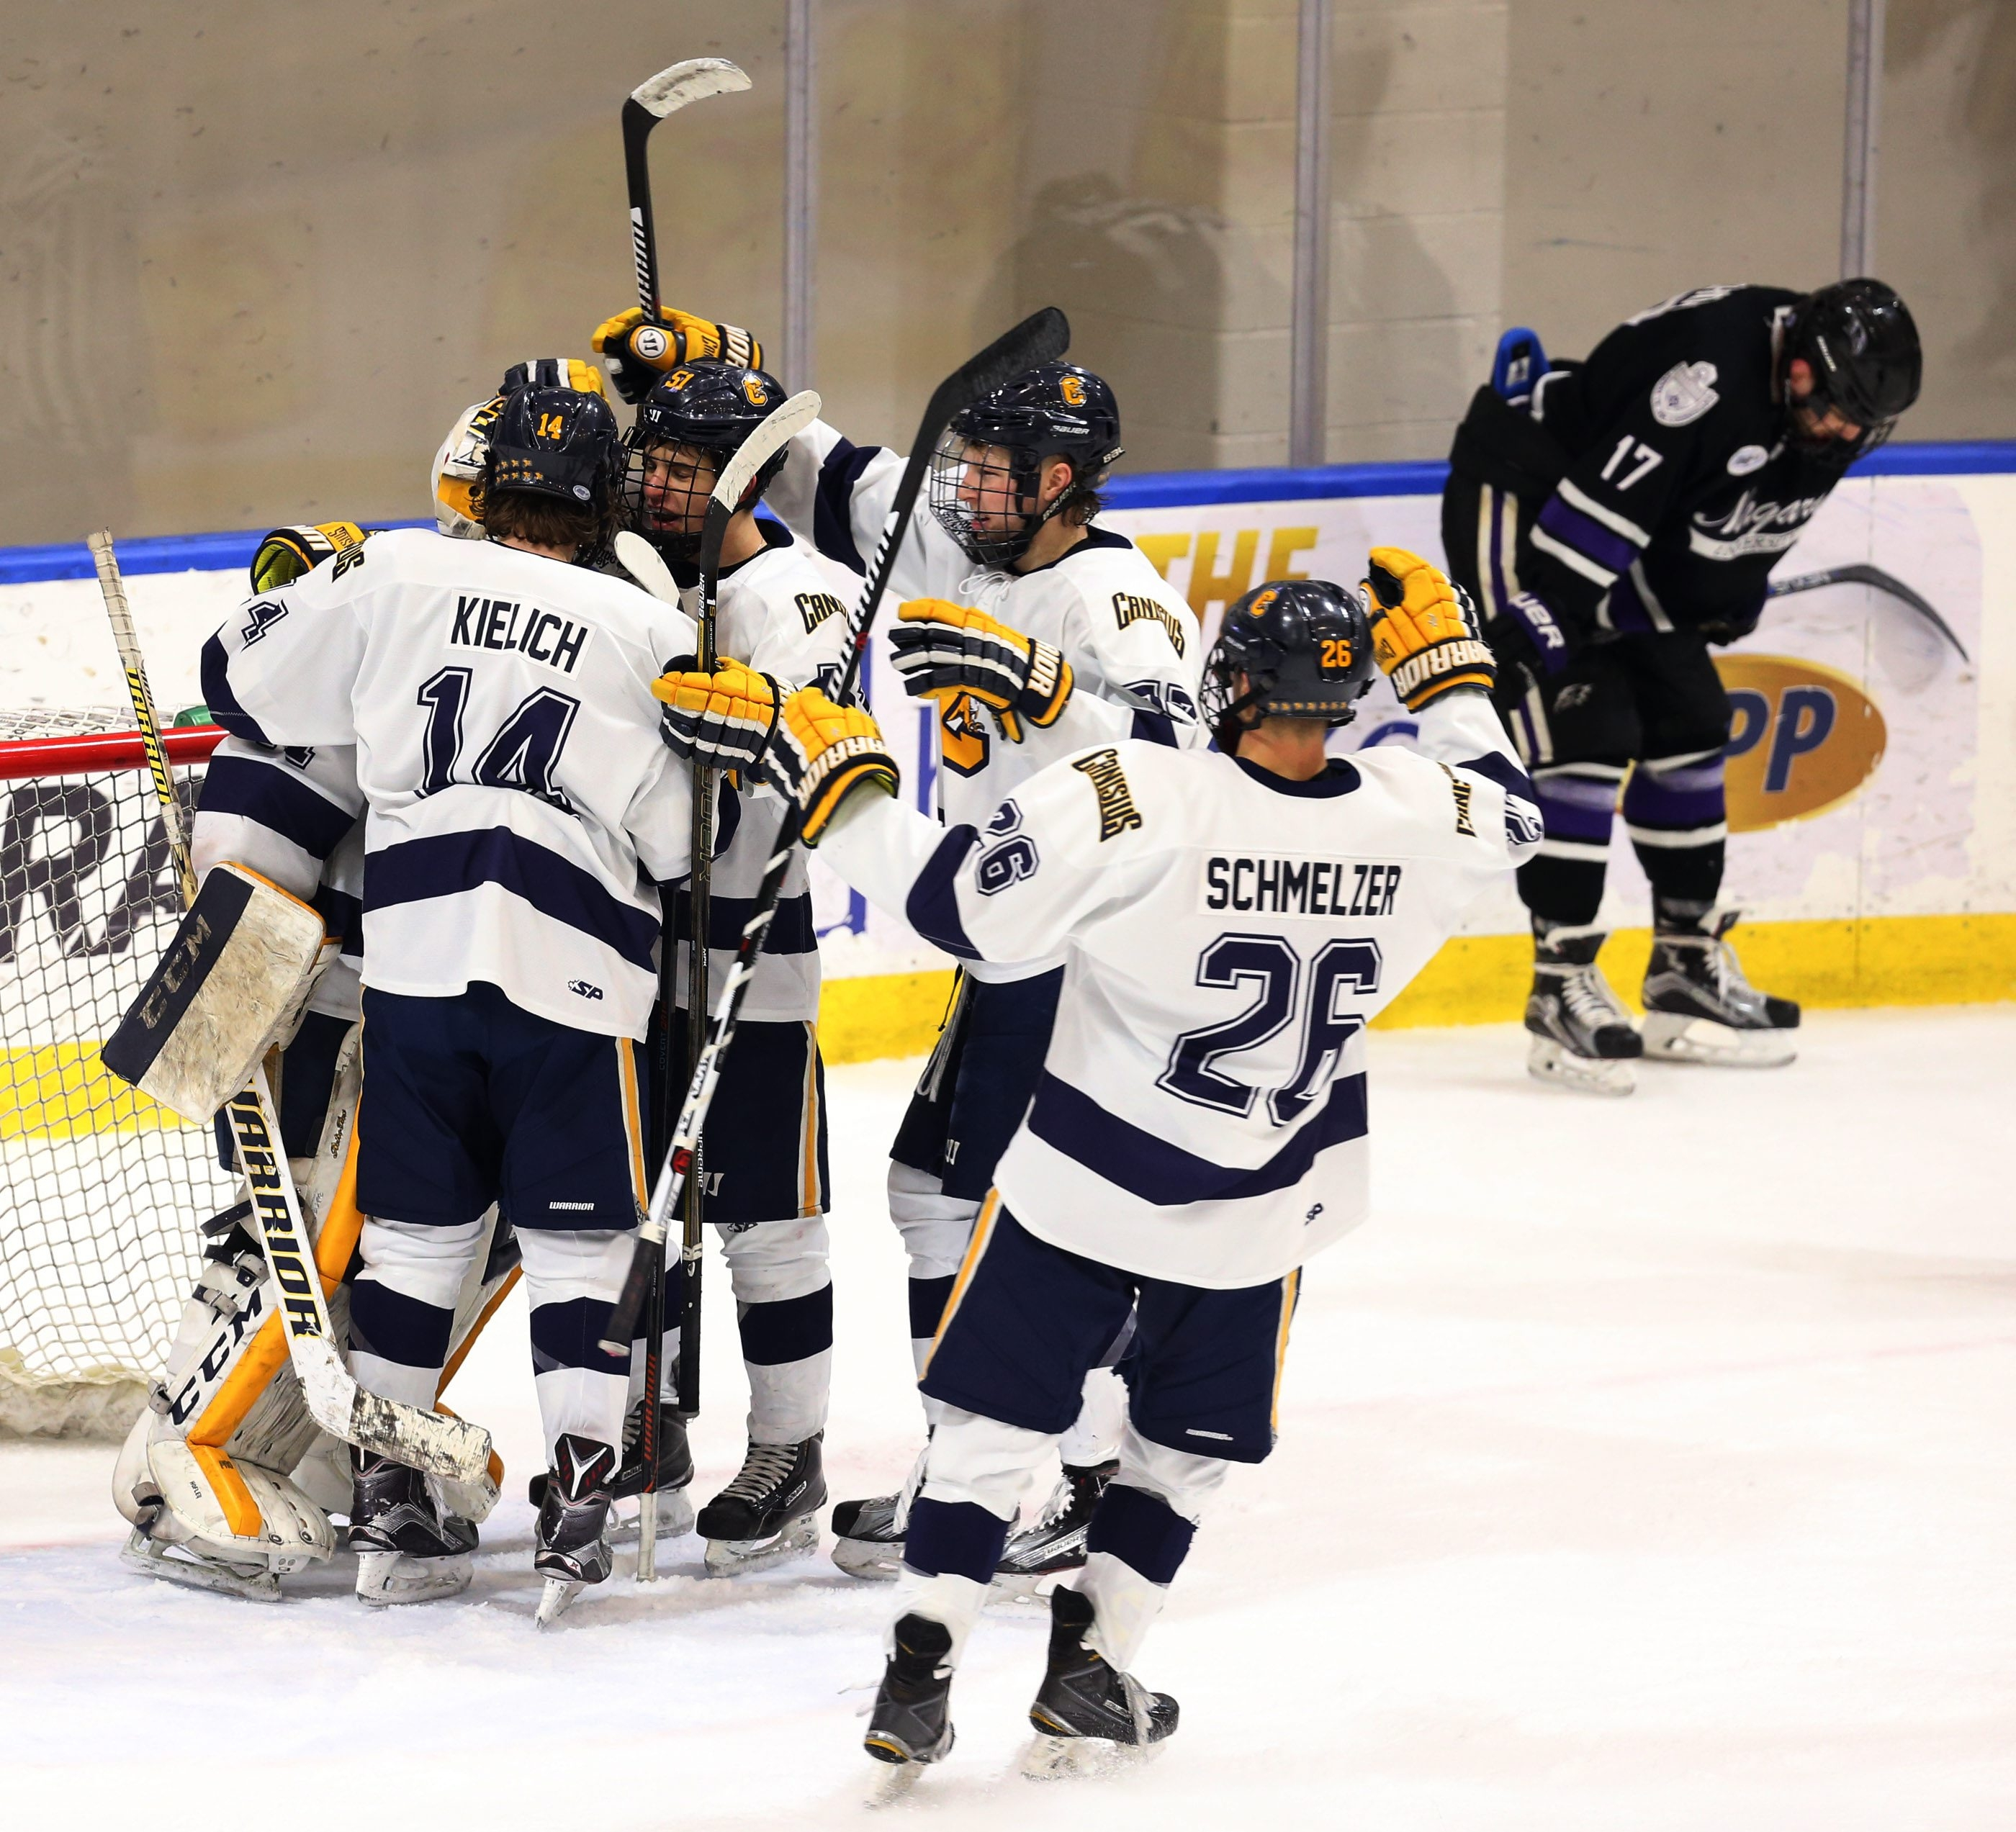 The Canisius Golden Griffins celebrate their first-round Atlantic Hockey series victory over Niagara on Sunday at HarborCenter.